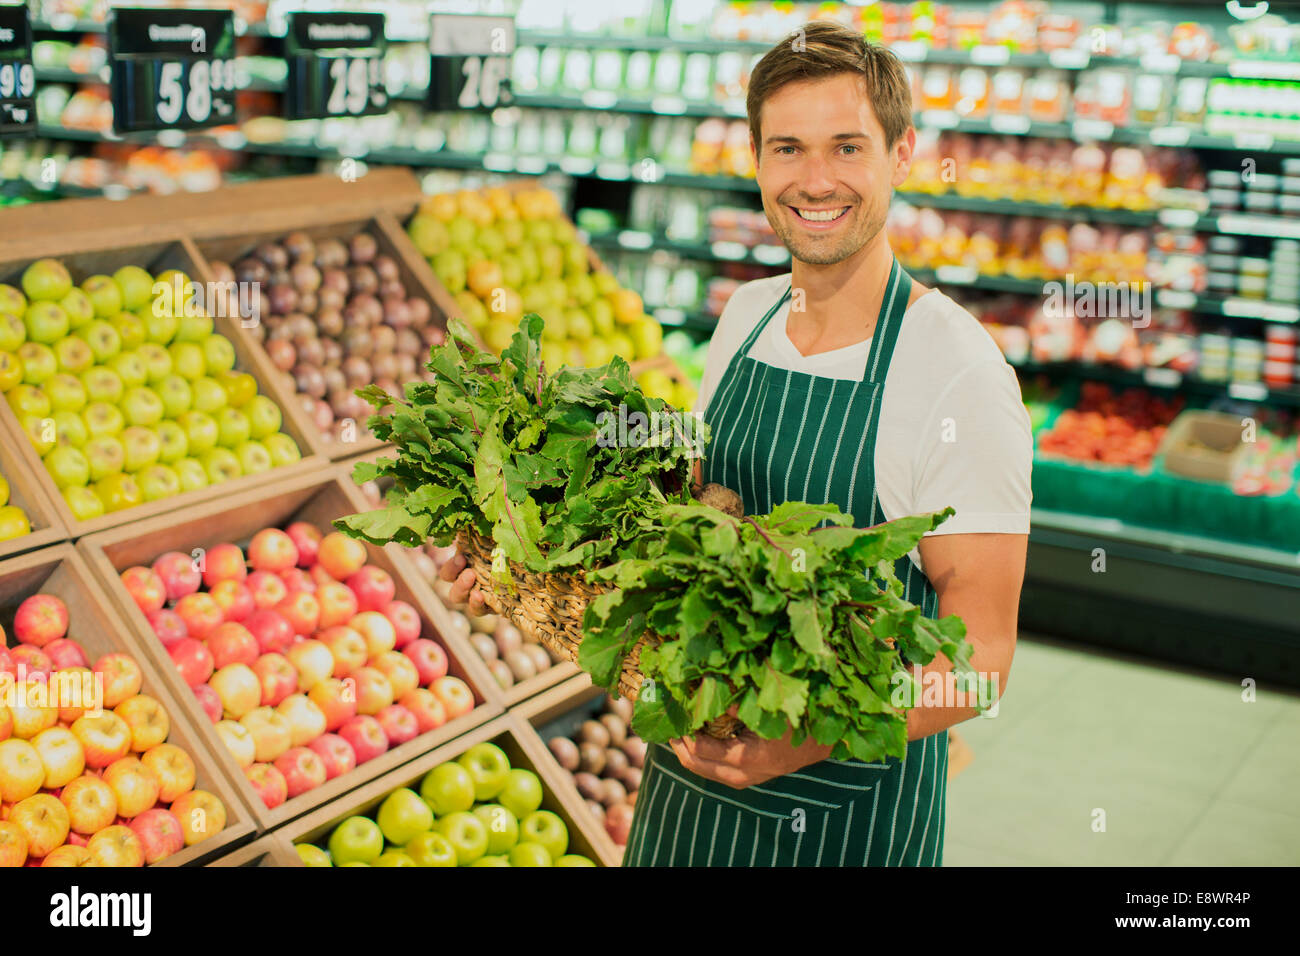 clerk carrying produce in grocery store stock photo